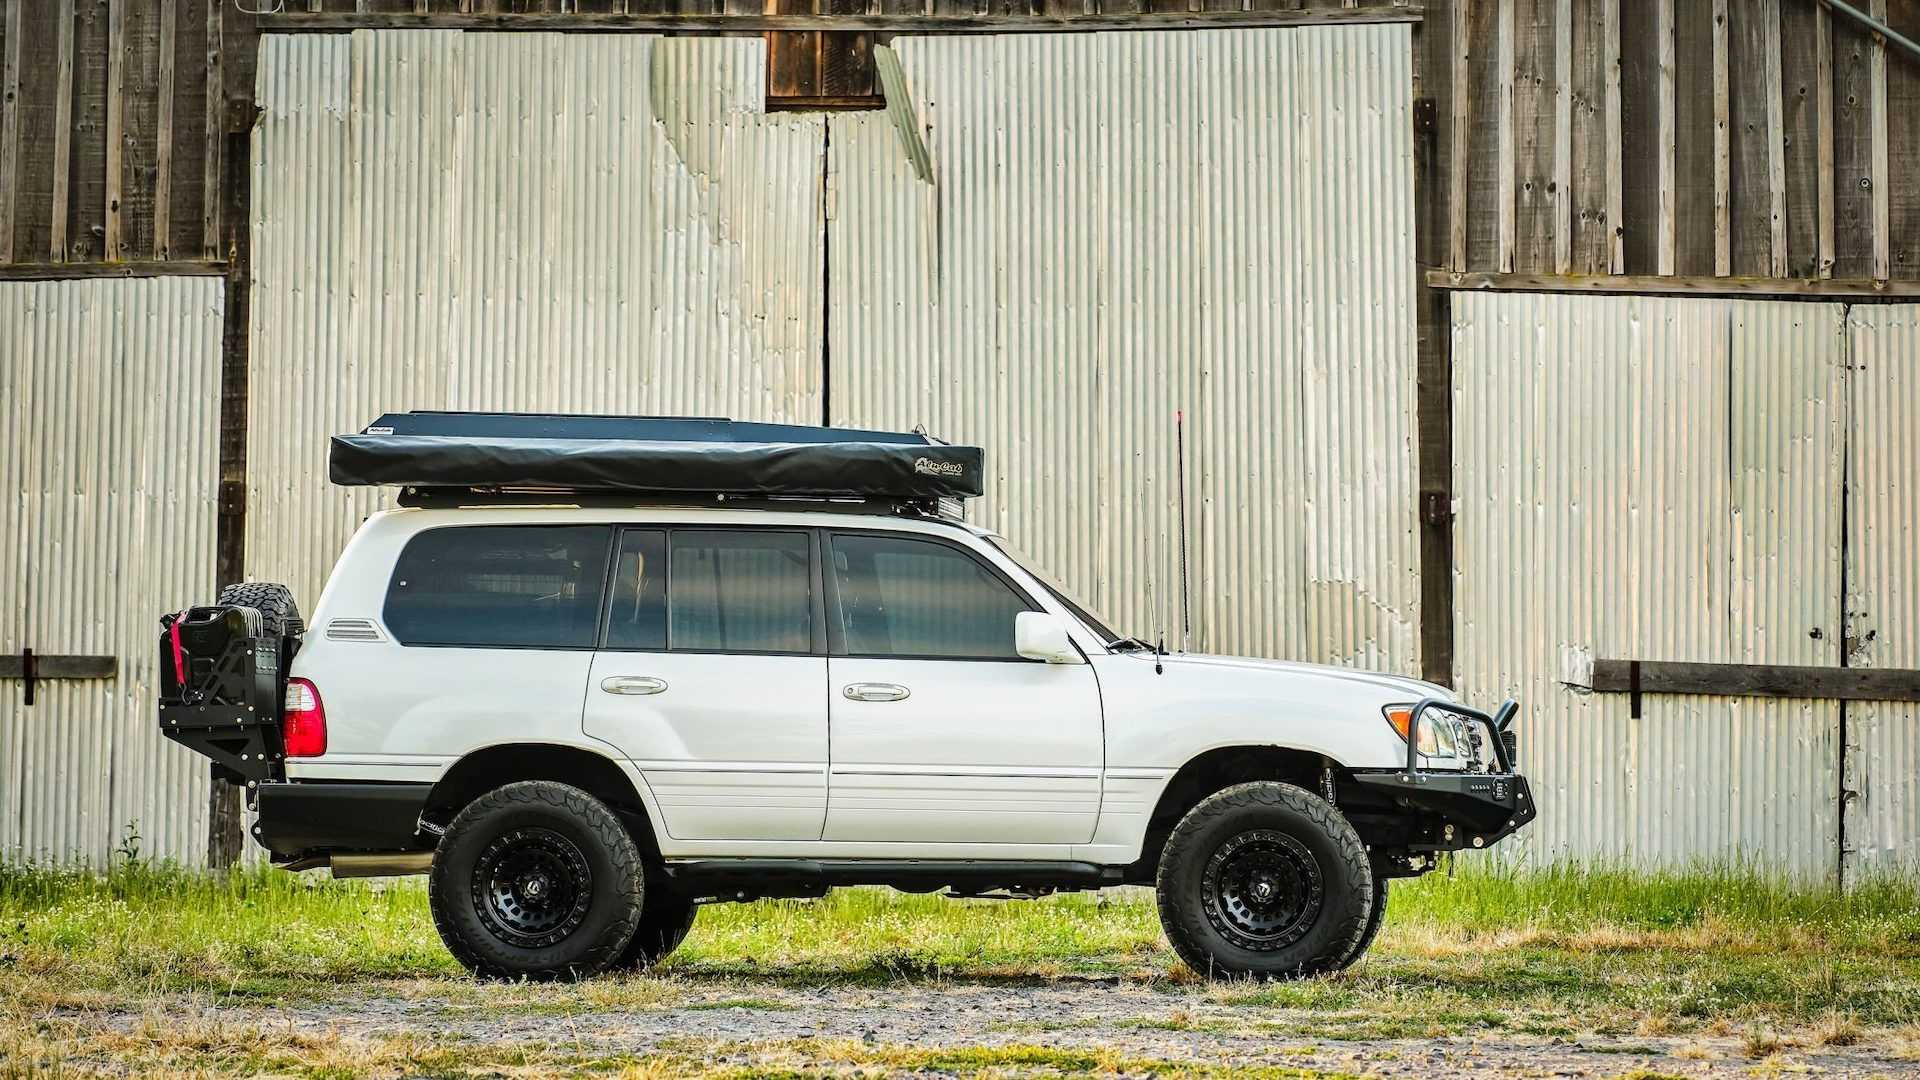 the best of both worlds with this overland ready lexus lx470 overland ready lexus lx470